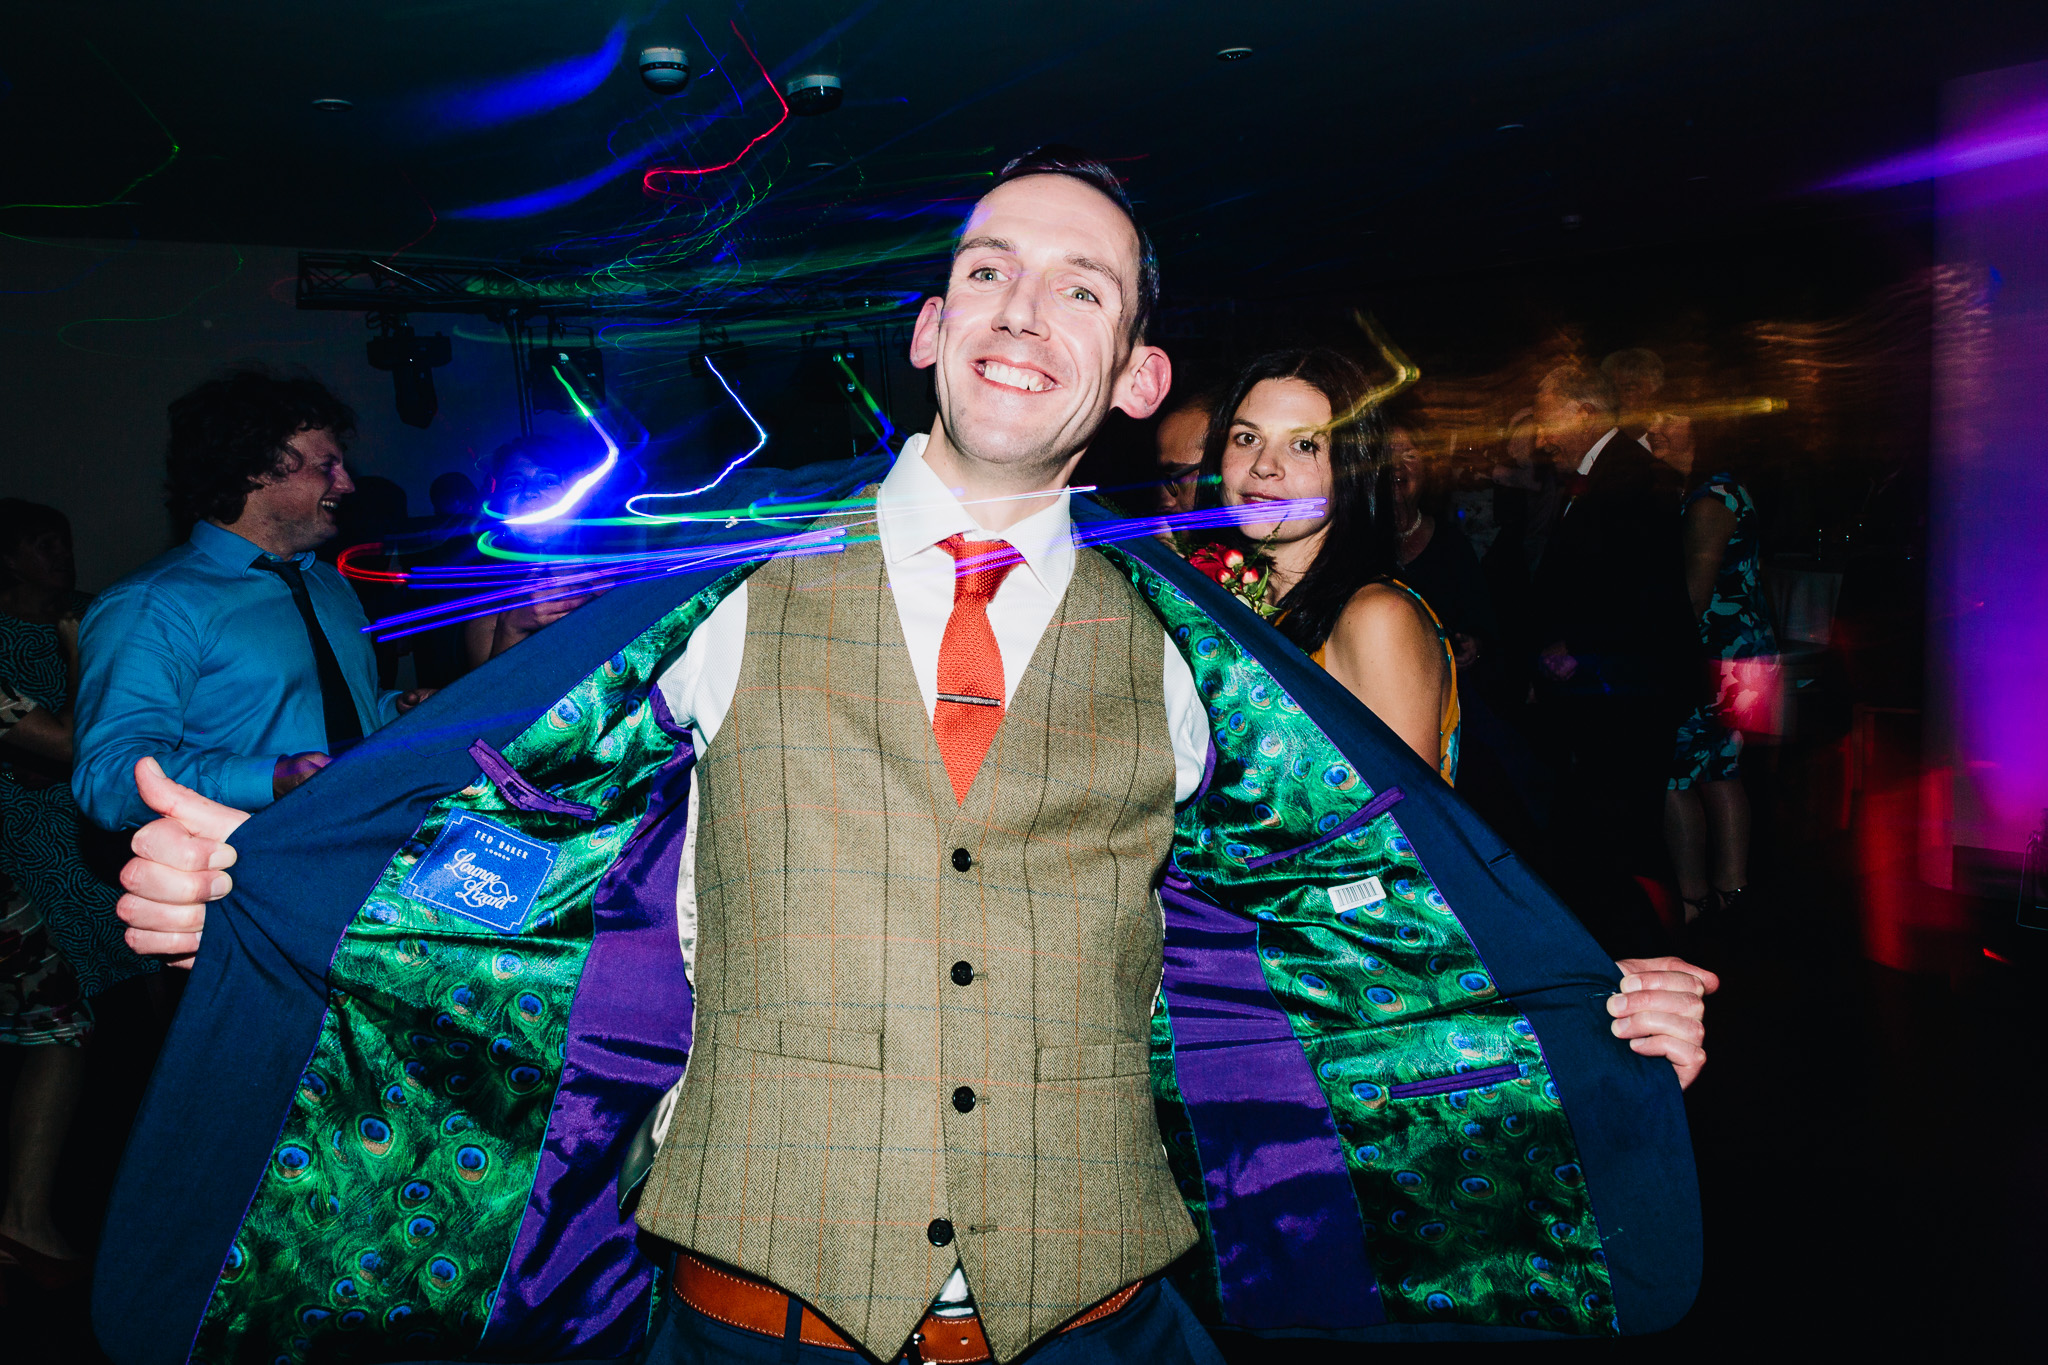 GROOM DANCING WITH LIGHTS AT WEDDING PARTY